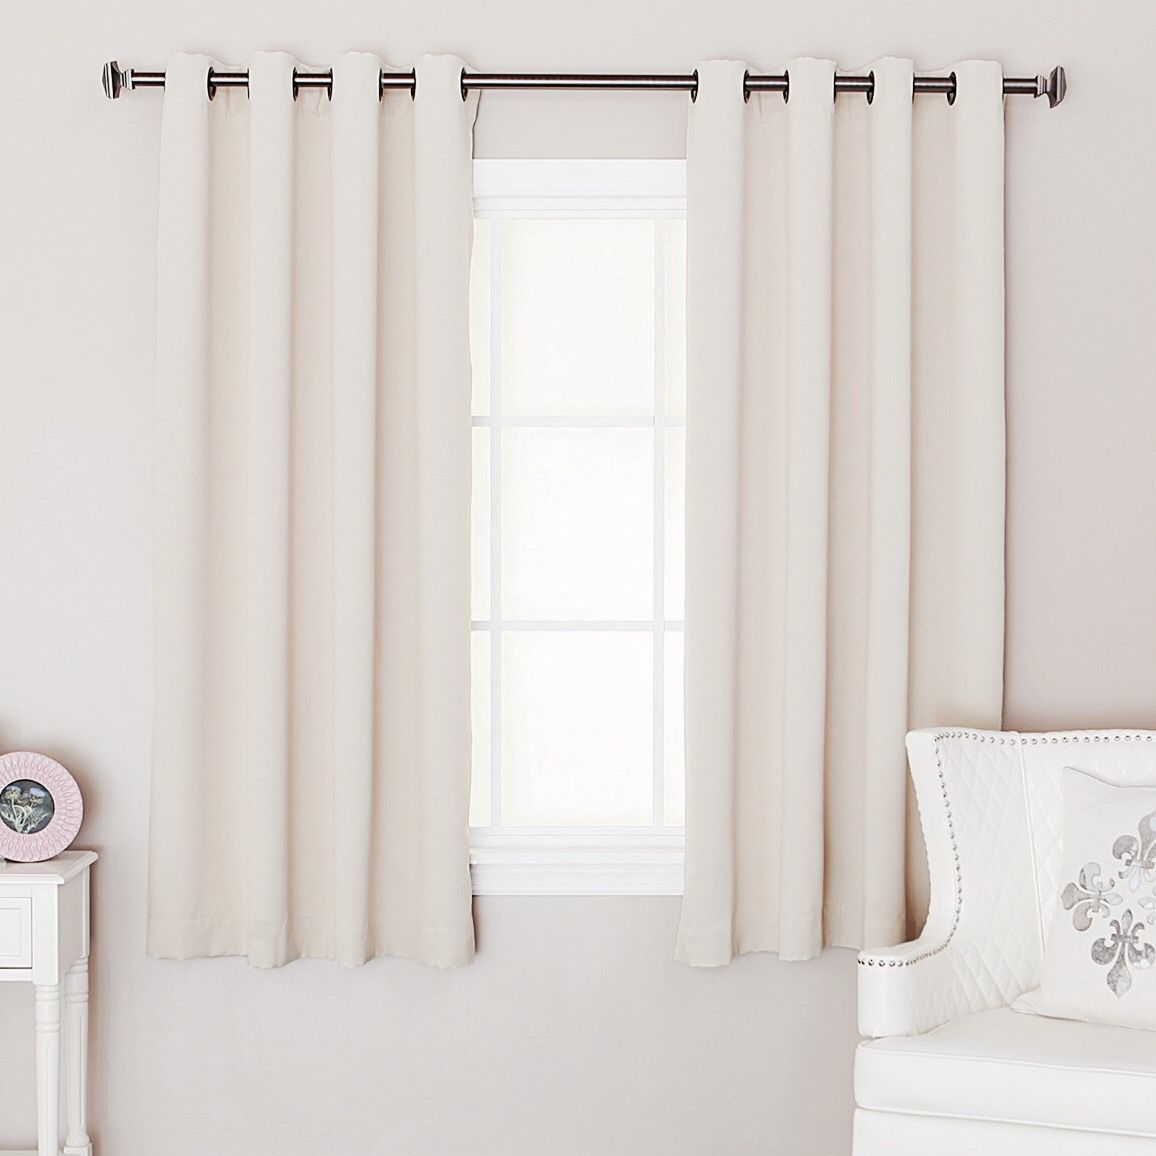 Small window curtain ideas interior pinterest short Curtain designs for bedroom